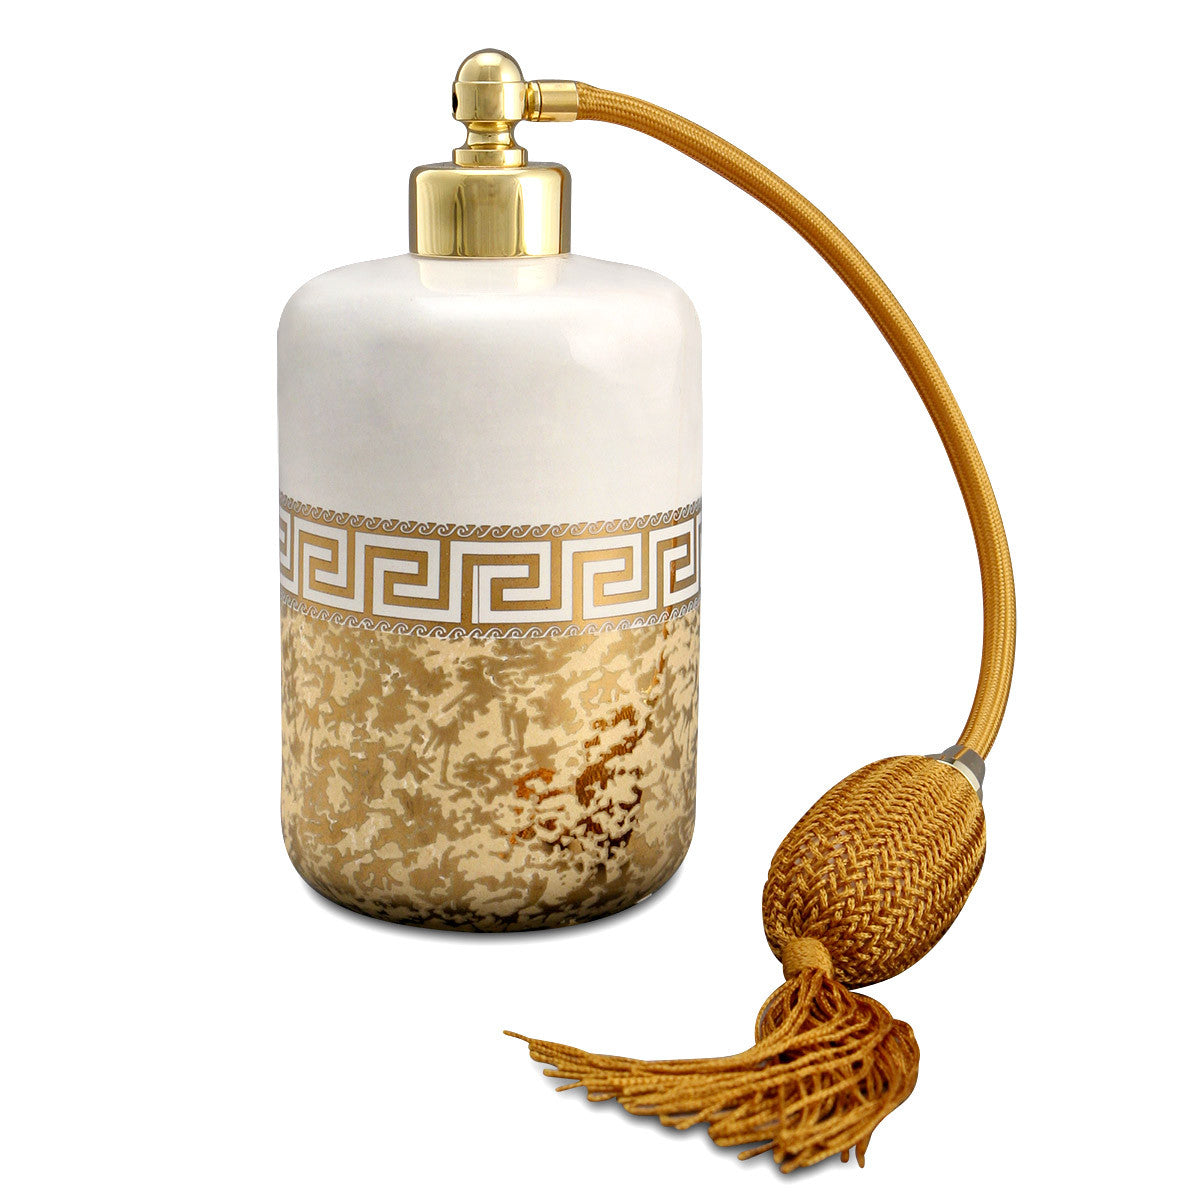 Hand-painted ceramic porcelain perfume dispenser in ivory glaze and finished in pure gold